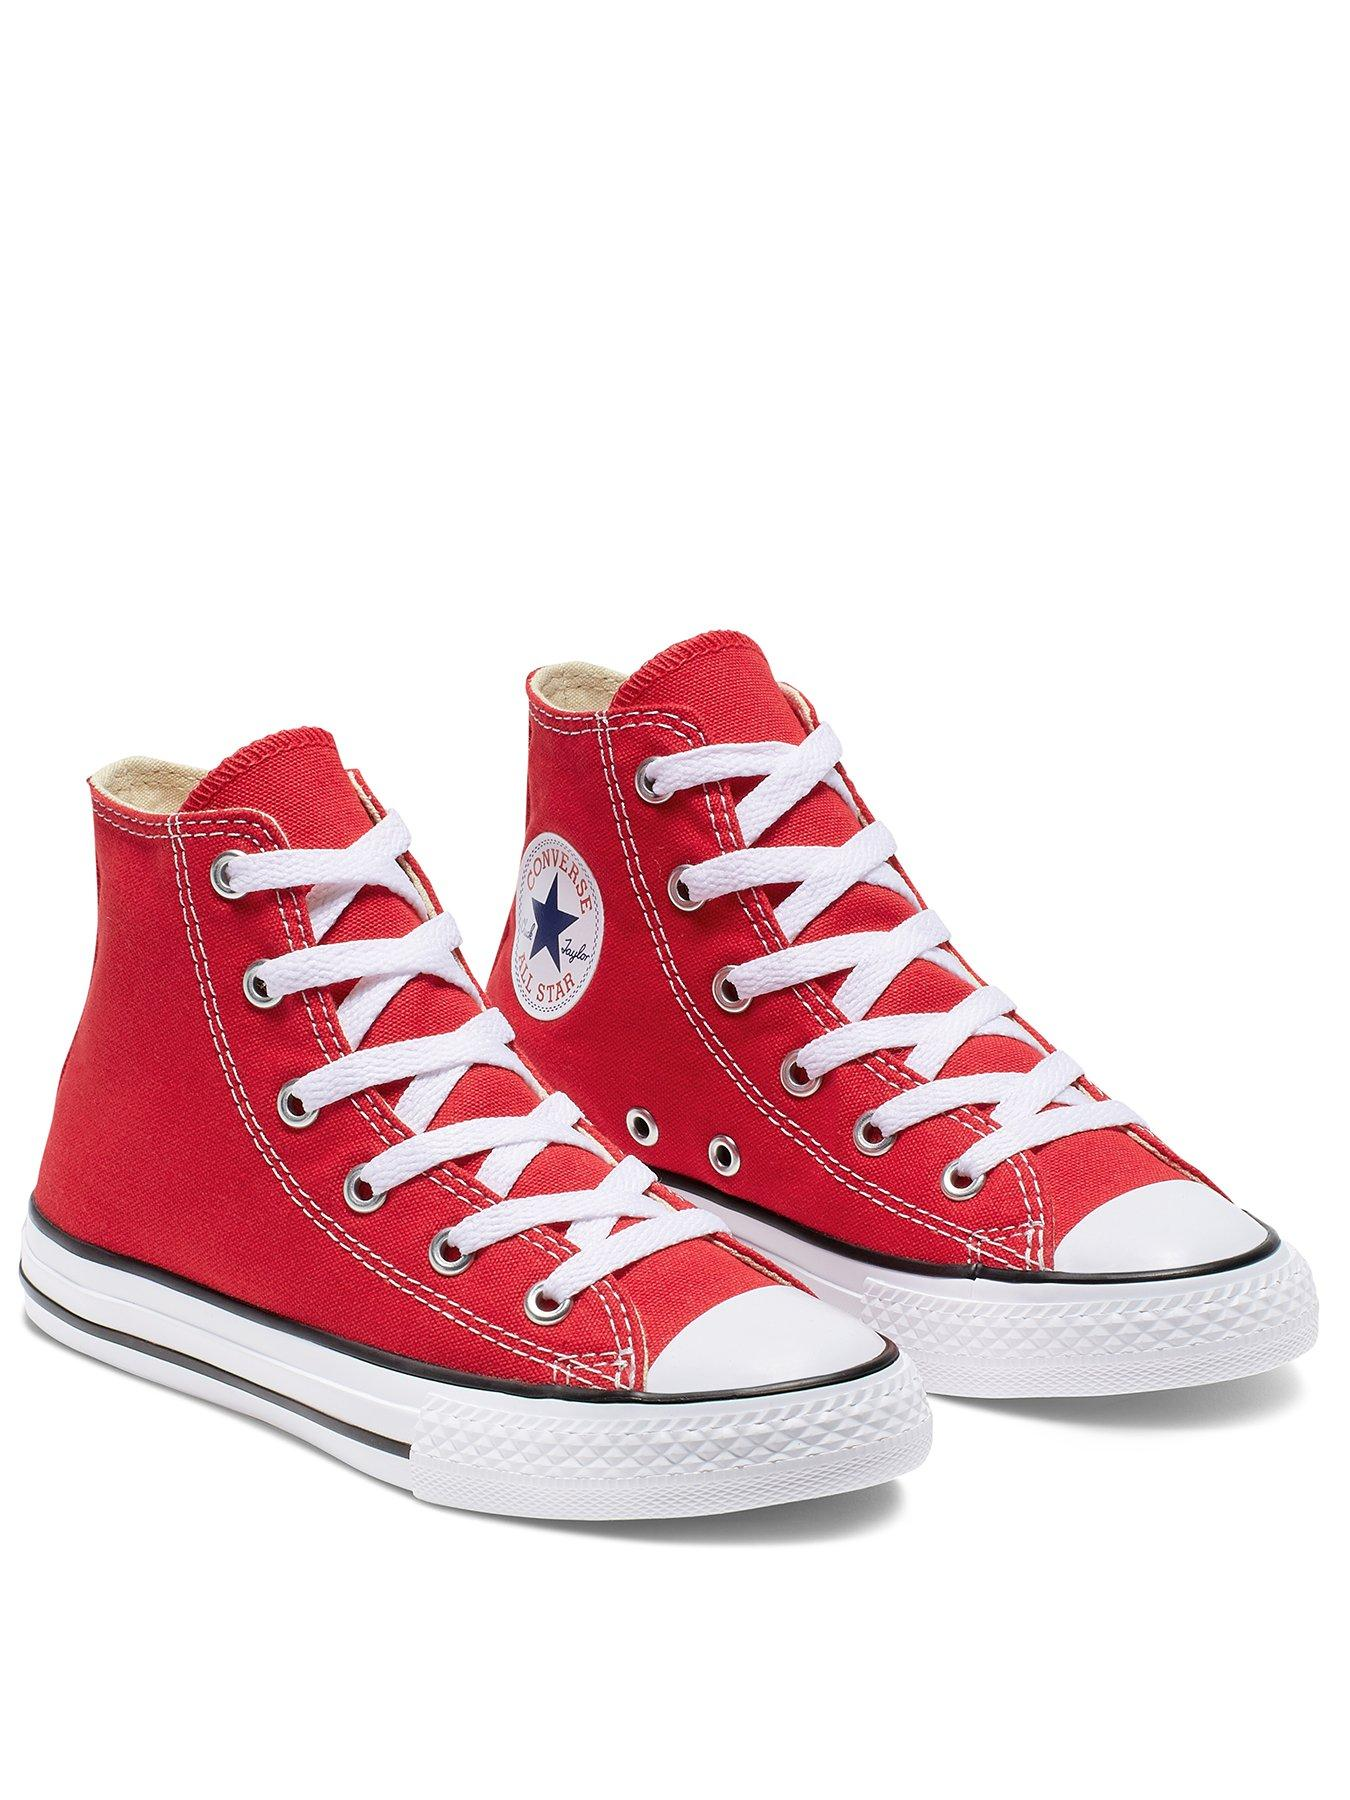 childrens converse